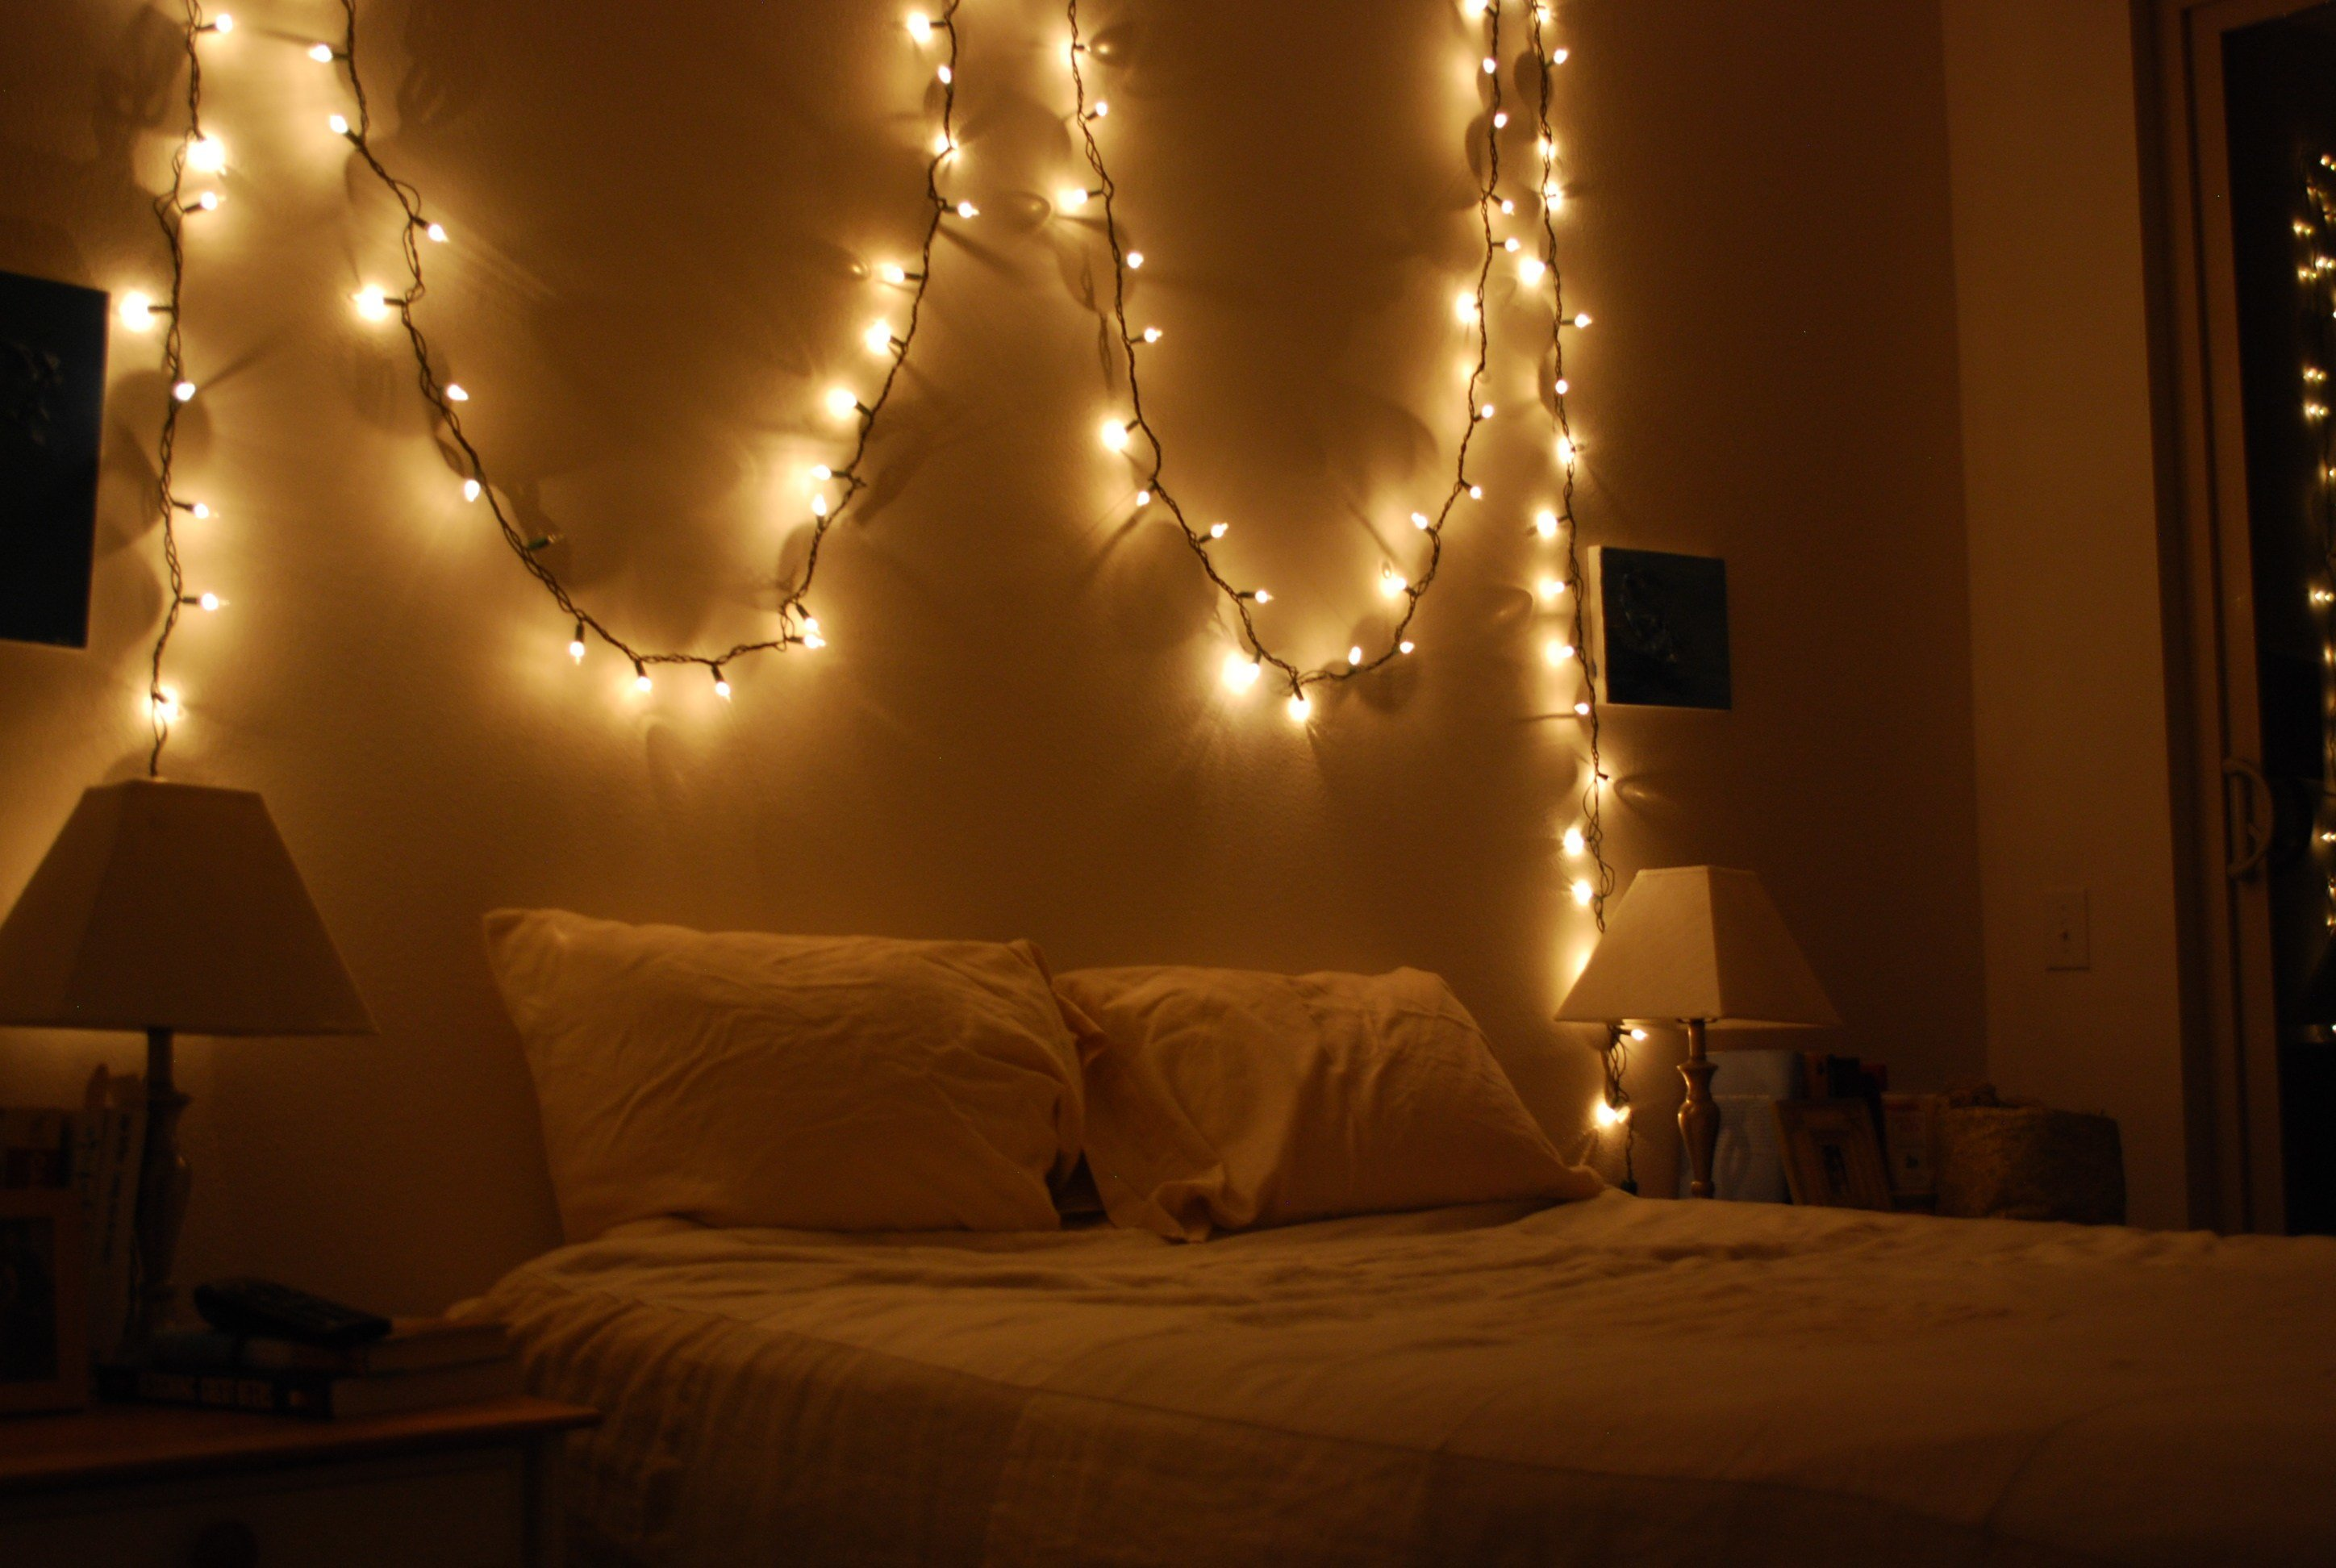 Best 1000 Images About Bedroom On Pinterest Christmas Lights Christmas Lights In Bedroom And With Pictures